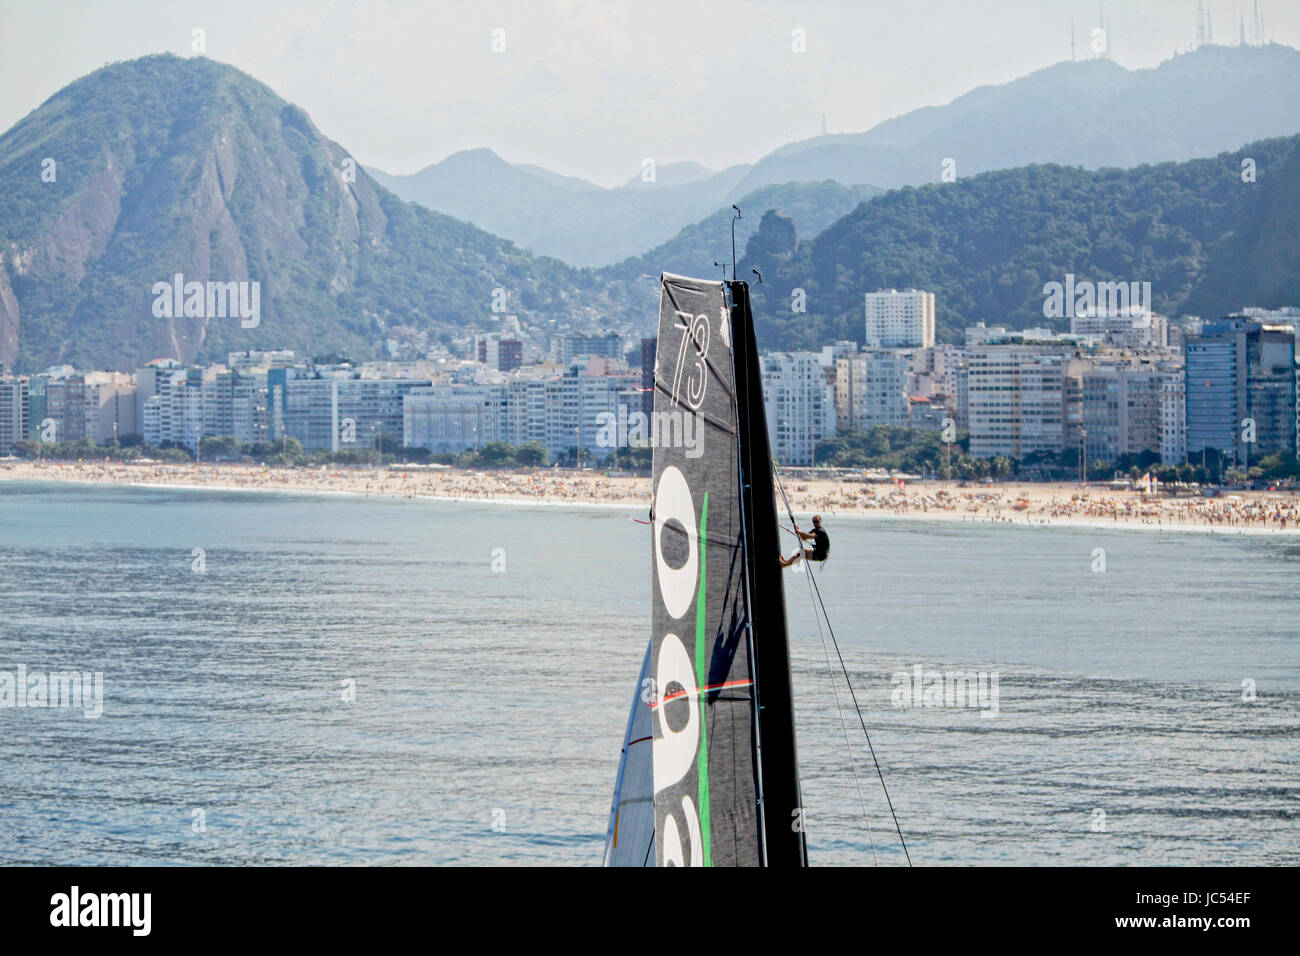 Thomas Coville and the Ultime Class 100' VPLP designed trimaran Sodebo in Rio de Janeiro, Brazil. Thomas Coville - Stock Image